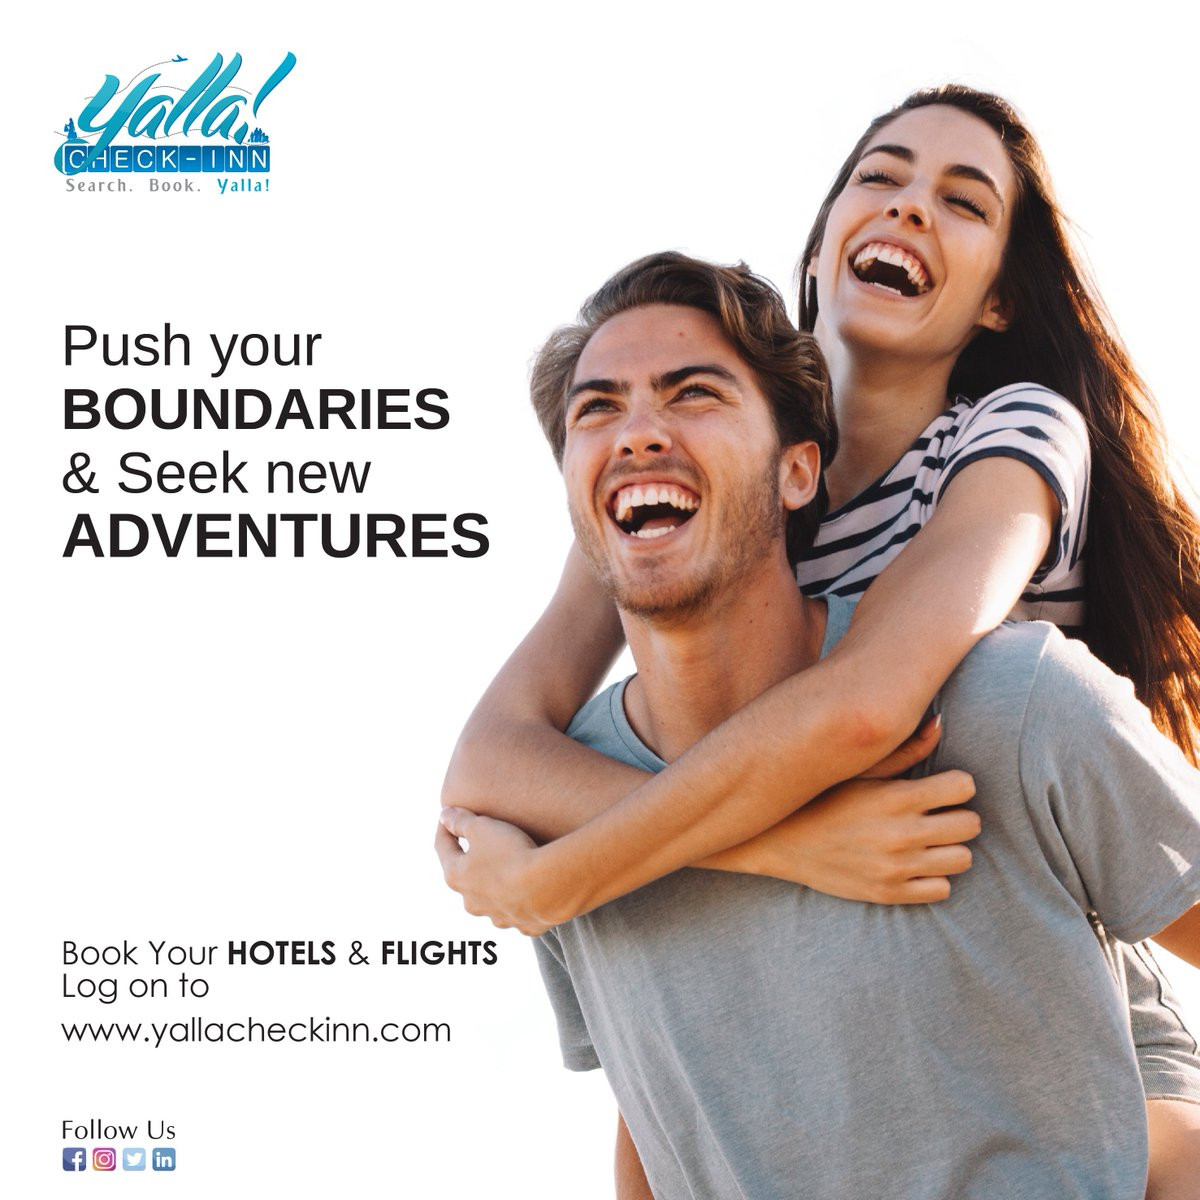 Book your #HOTELS with https://t.co/baScaL4E94 https://t.co/2EfS5xYuMX